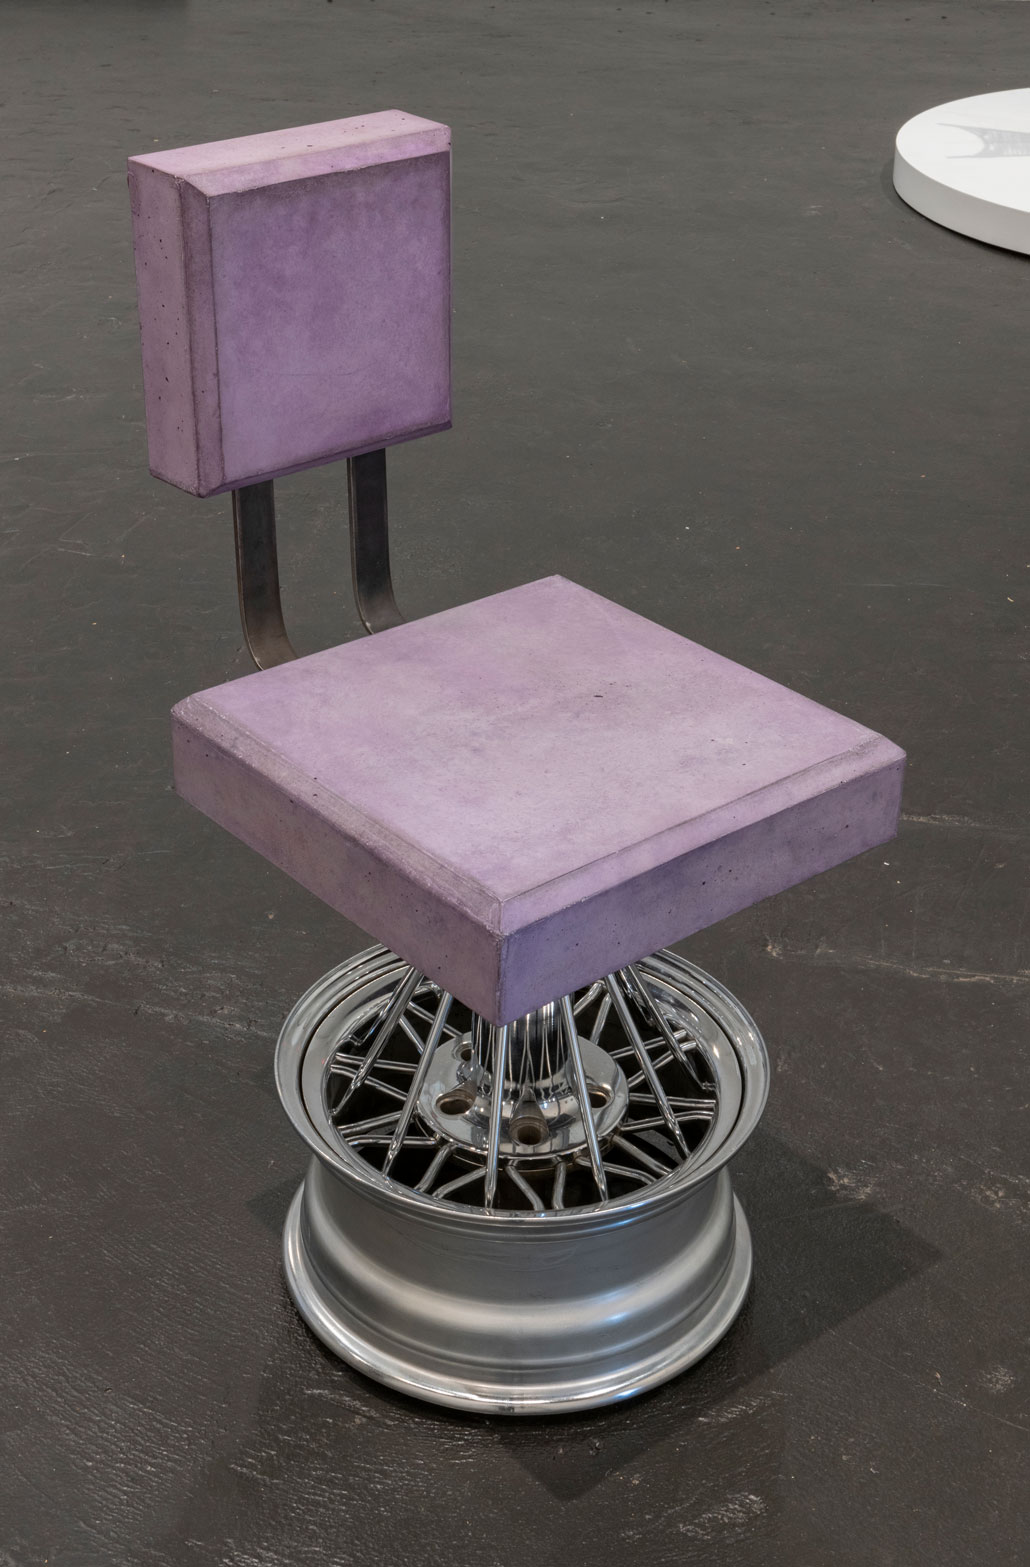 Purple and metal chair with no arms on metallic base